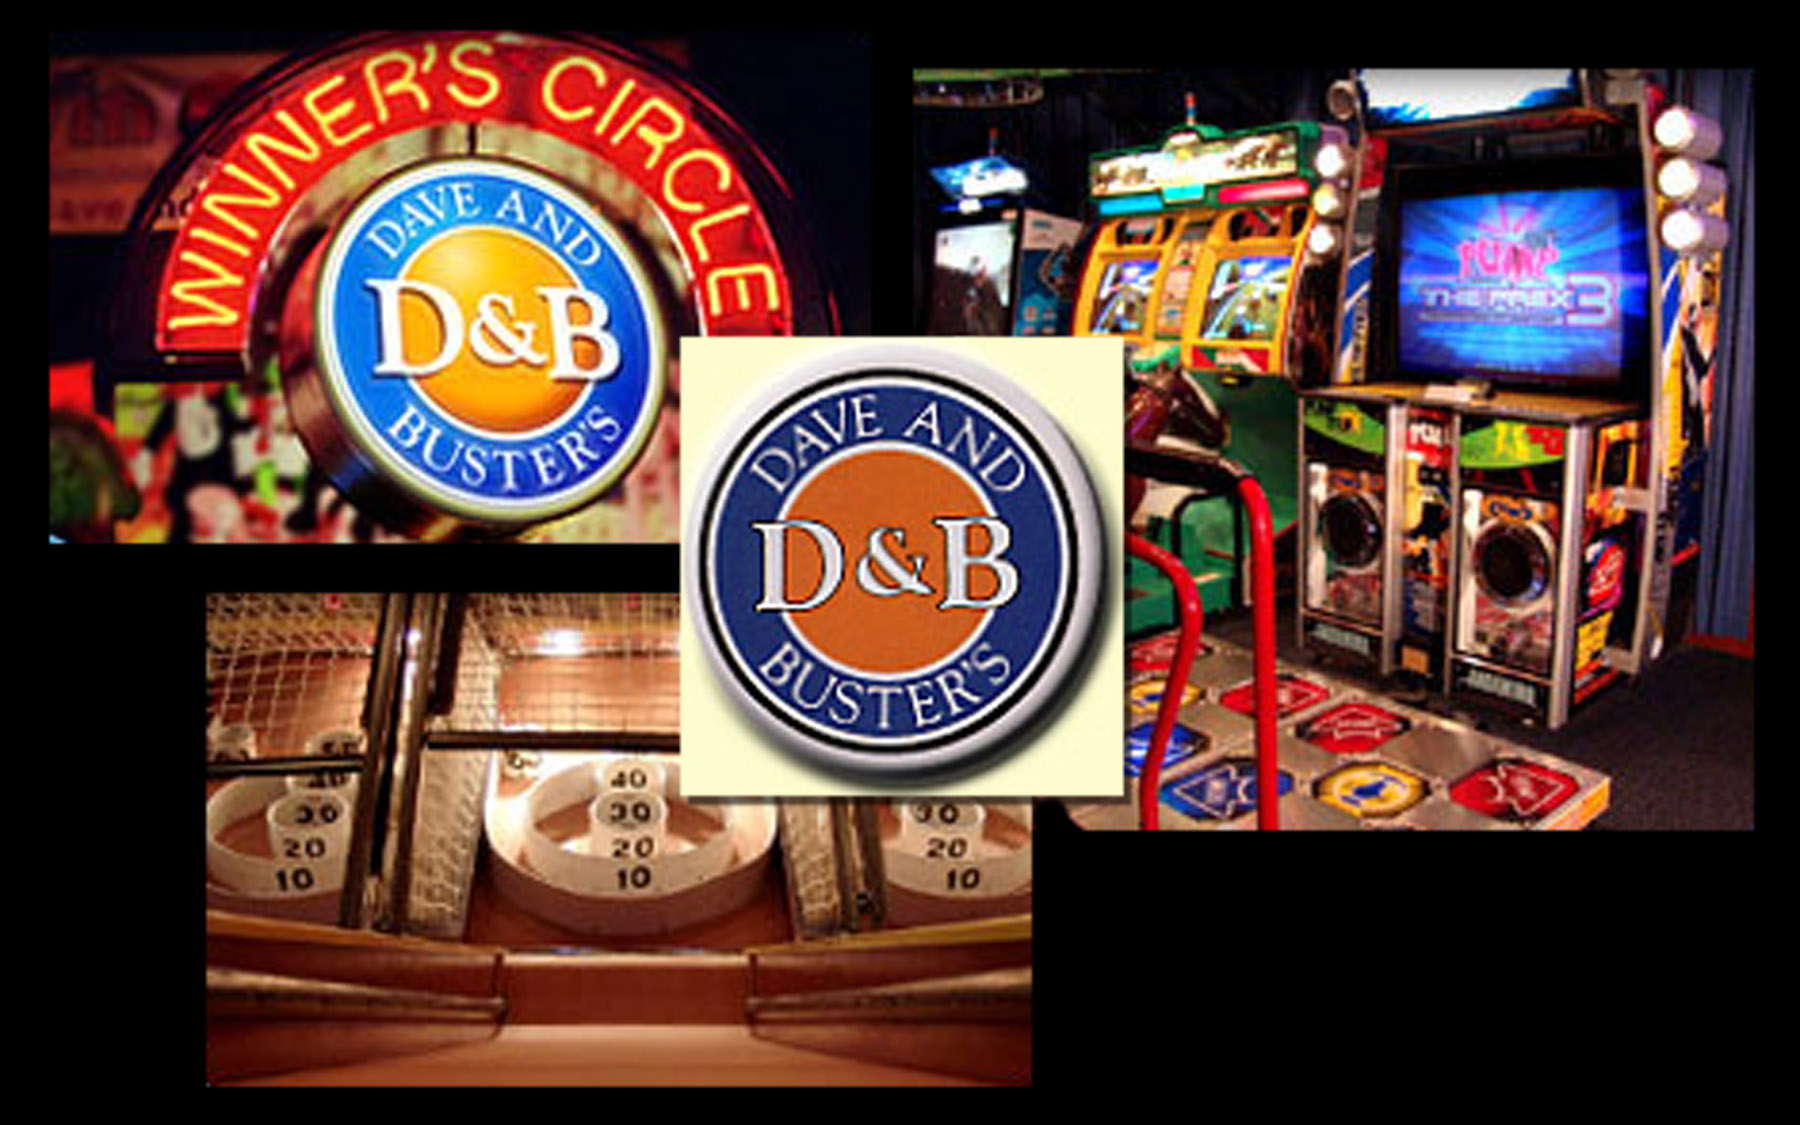 Dave & Buster's in Kansas City, KS